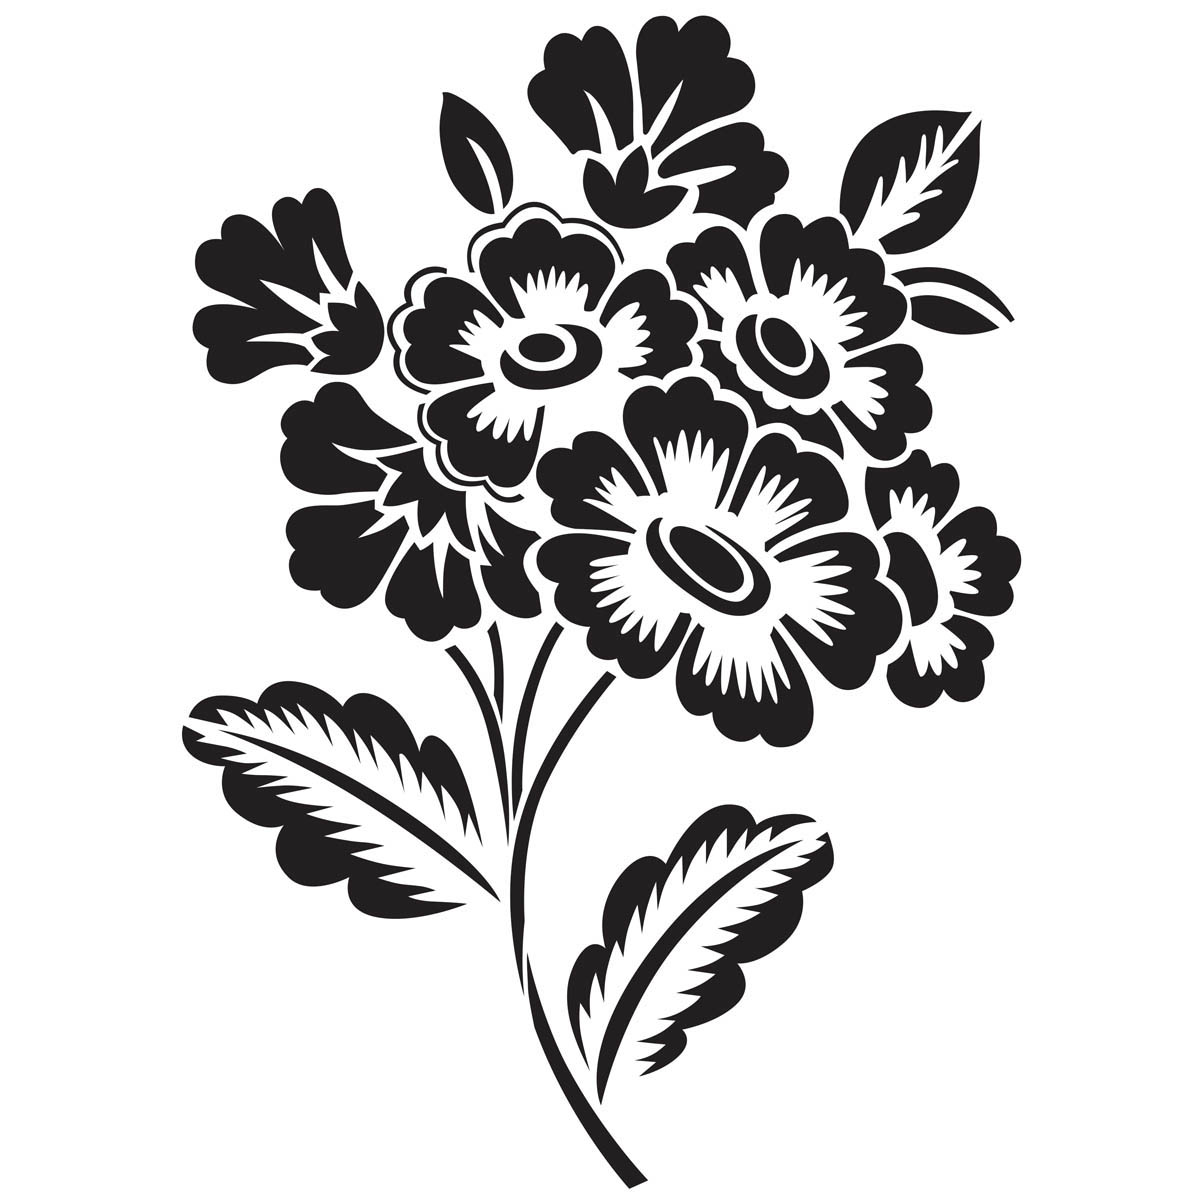 Waverly ® Inspirations Laser Stencils - Accent - Floral Sprig, 6